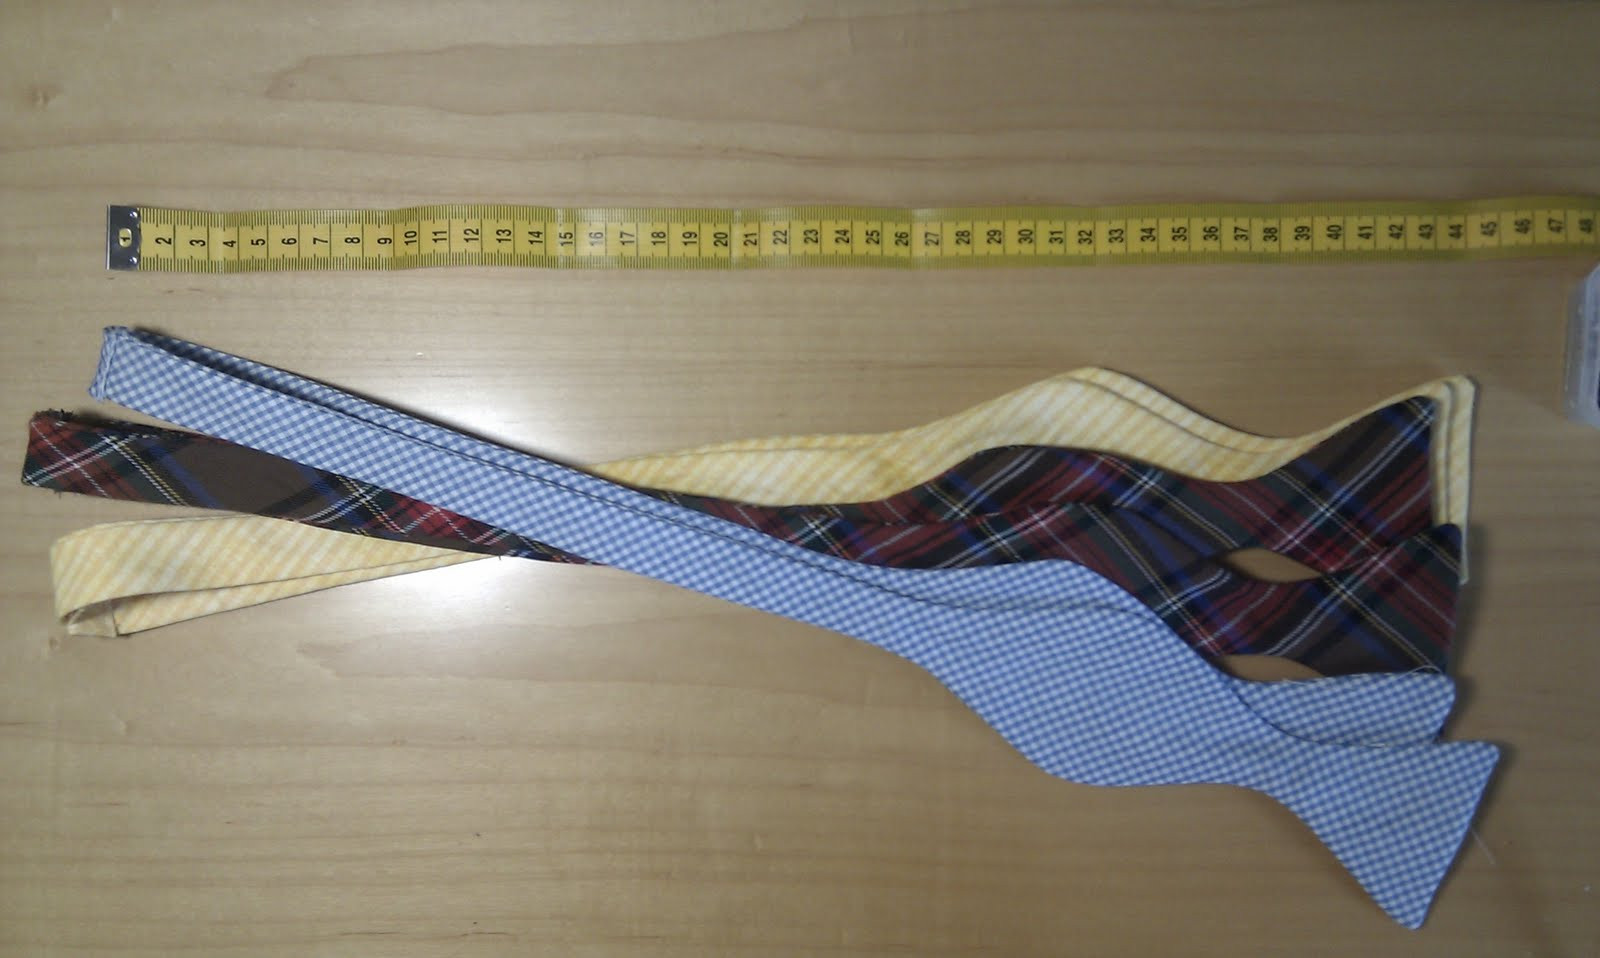 Engineering a Bow Tie